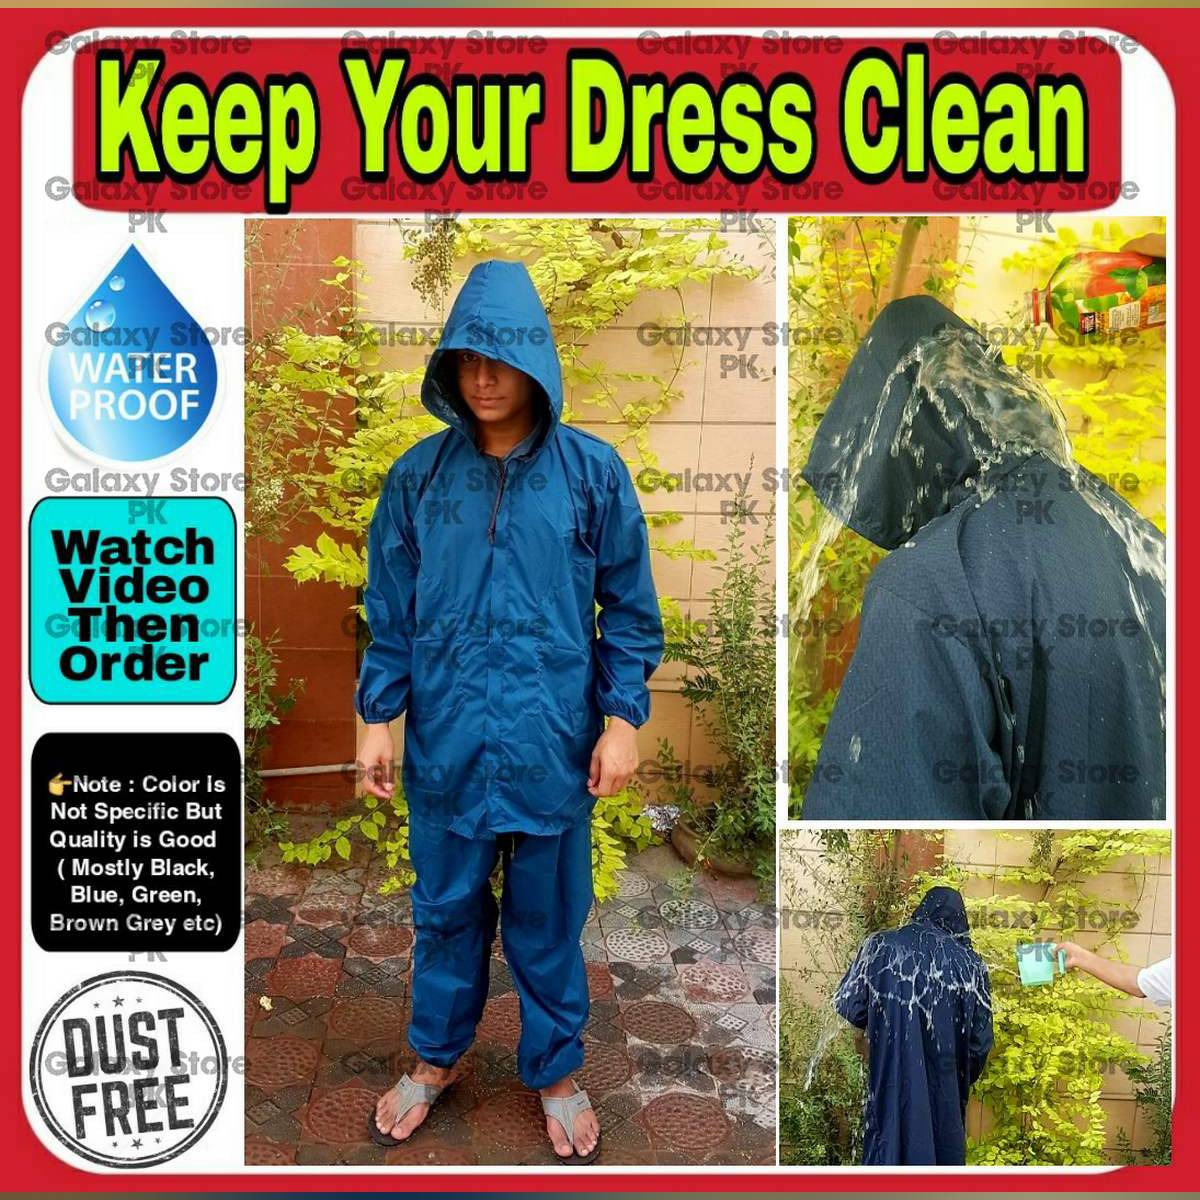 Alpha Rain Suit ( With Trouser ) For Rainy Season Used While Riding Motorcycle Travelling Camping Hiking Fishing Bike Rain Wear Rain Cover Portable